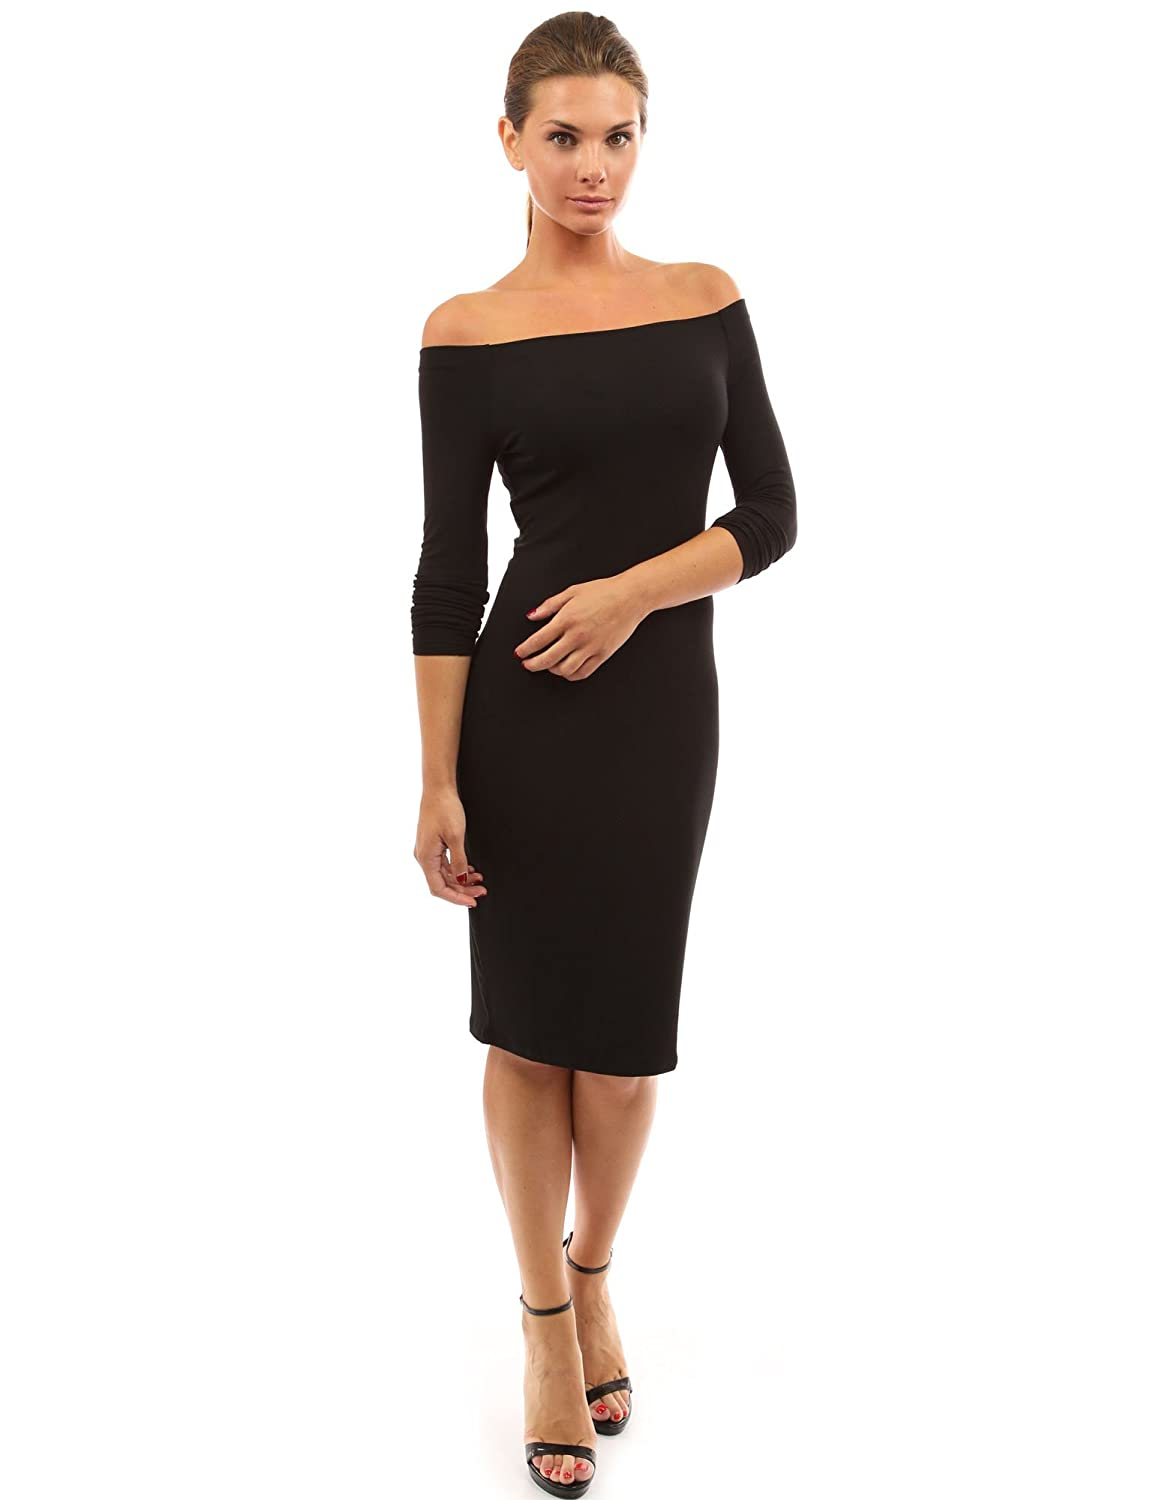 Amazon.com: PattyBoutik Women&39s Off Shoulder Long Sleeve Dress ...